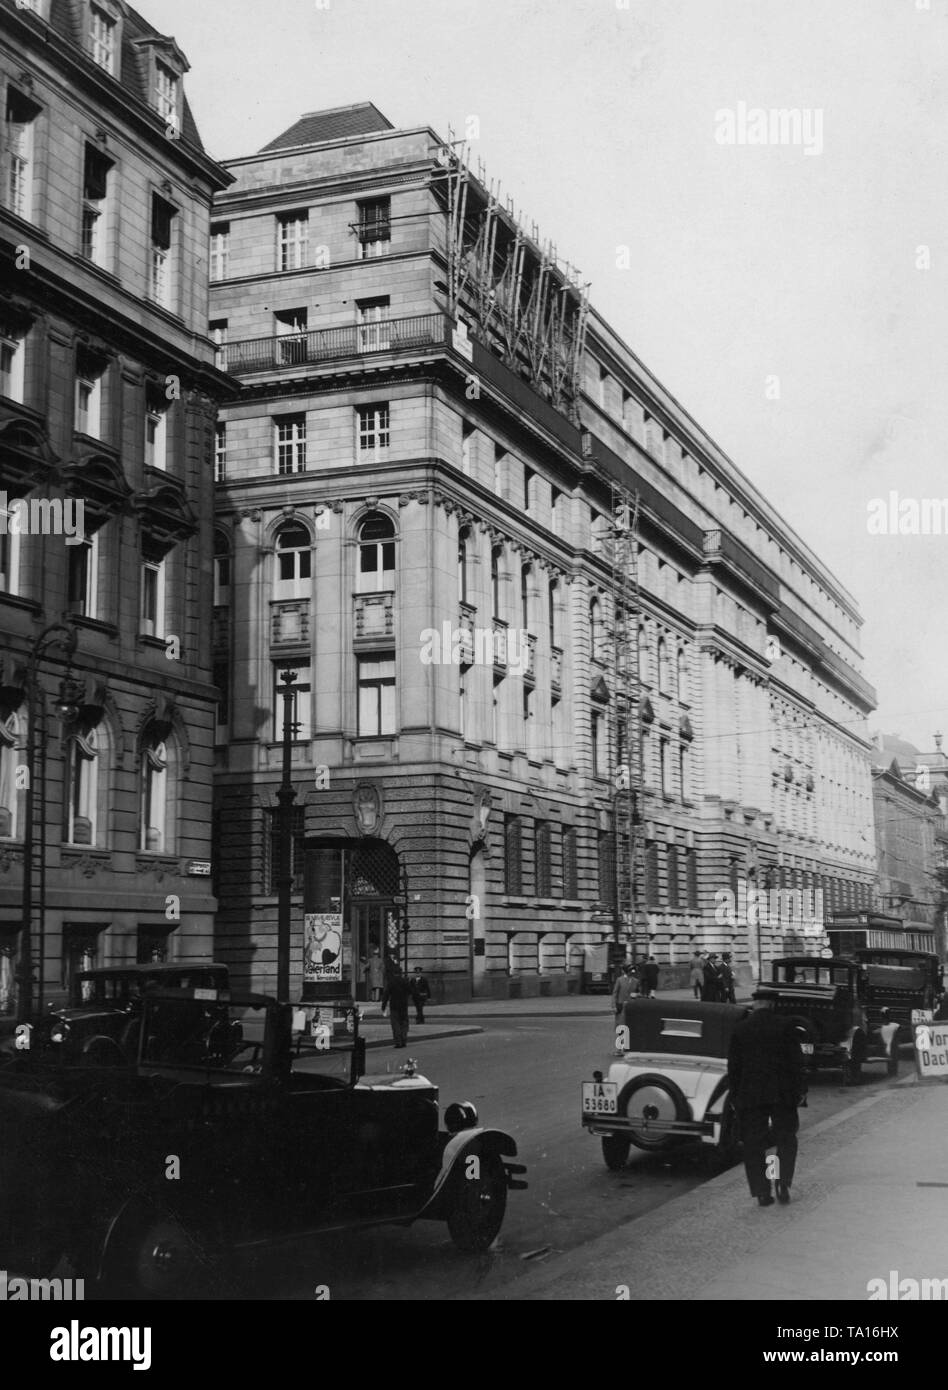 Building of the branch of the Disconto-Gesellschaft. The Americans withdrew their loans from Germany, where they were scheduled for long-term investments. As a result, Deutsche Bank merged with the Disconto-Gesellschaft into the largest bank in the German Reich. - Stock Image